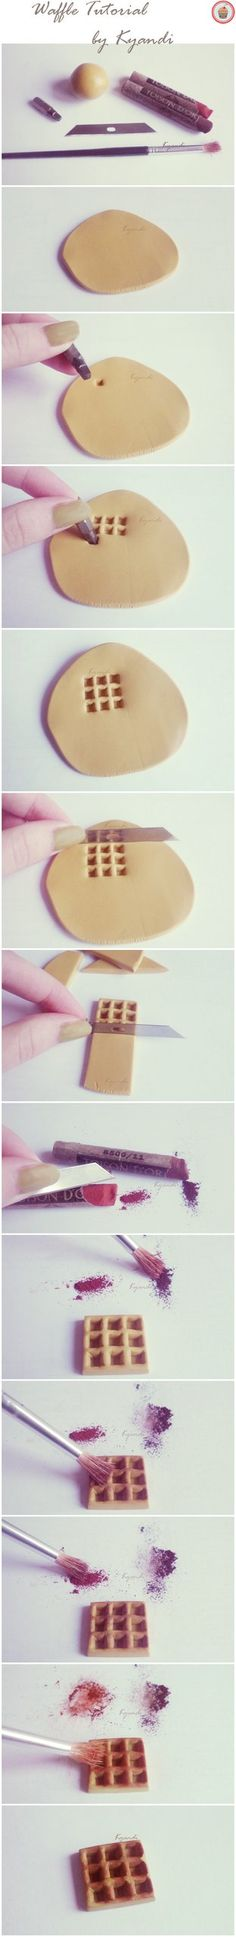 Tutorial : How to make a waffle in fondant / gum paste / clay